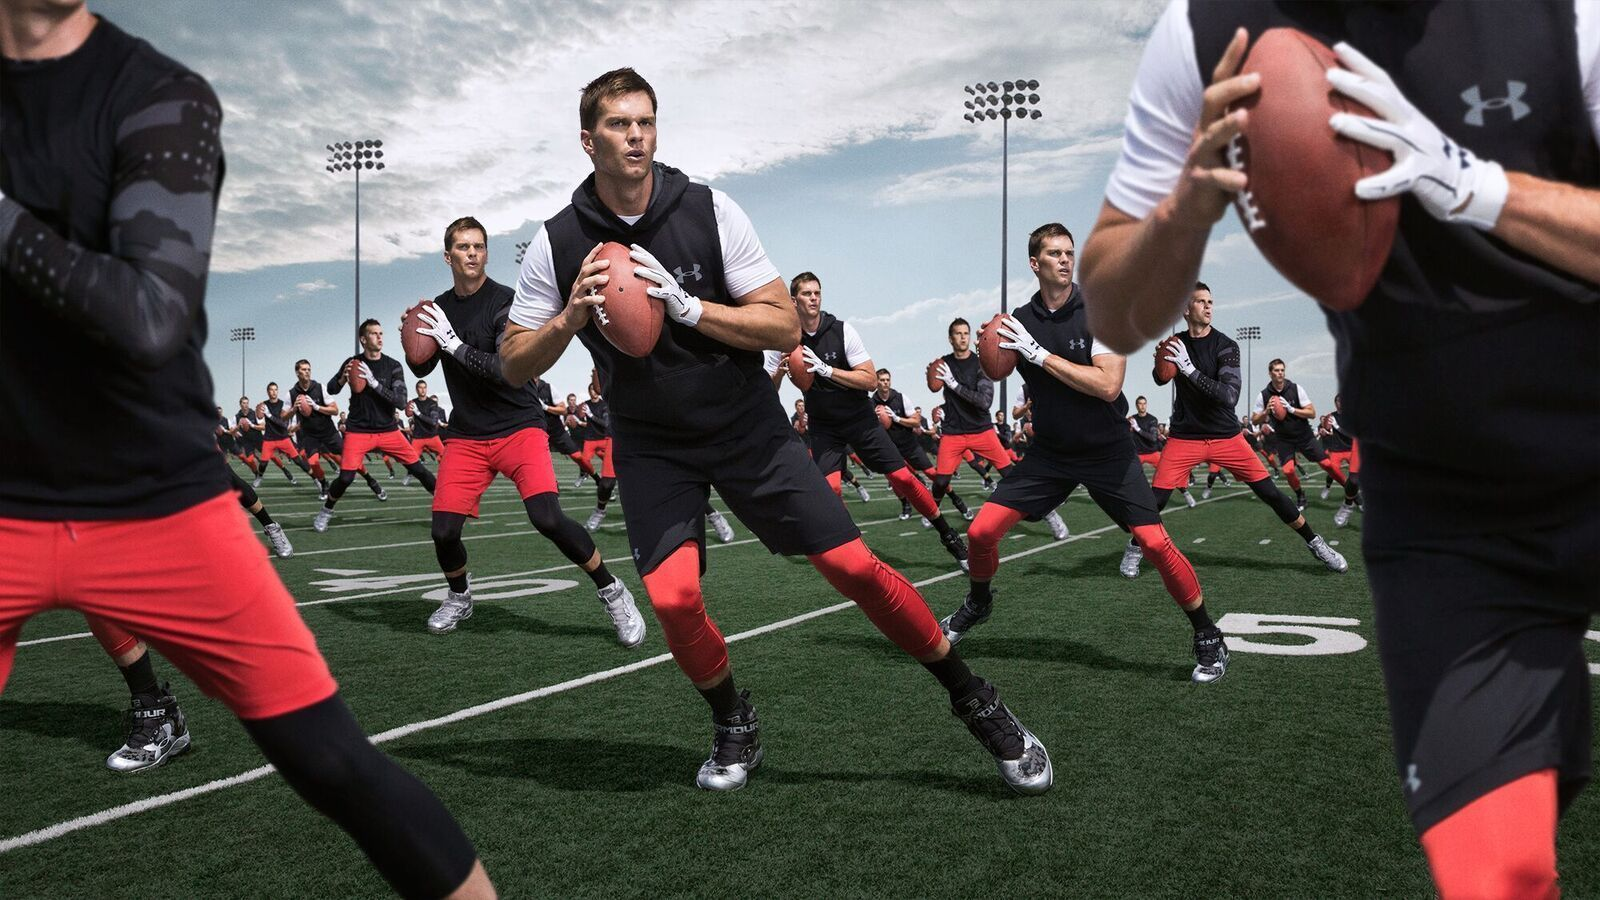 facffd27901 ... order celebrated ad firm droga5 takes on under armour in a bigger way baltimore  sun 374f7